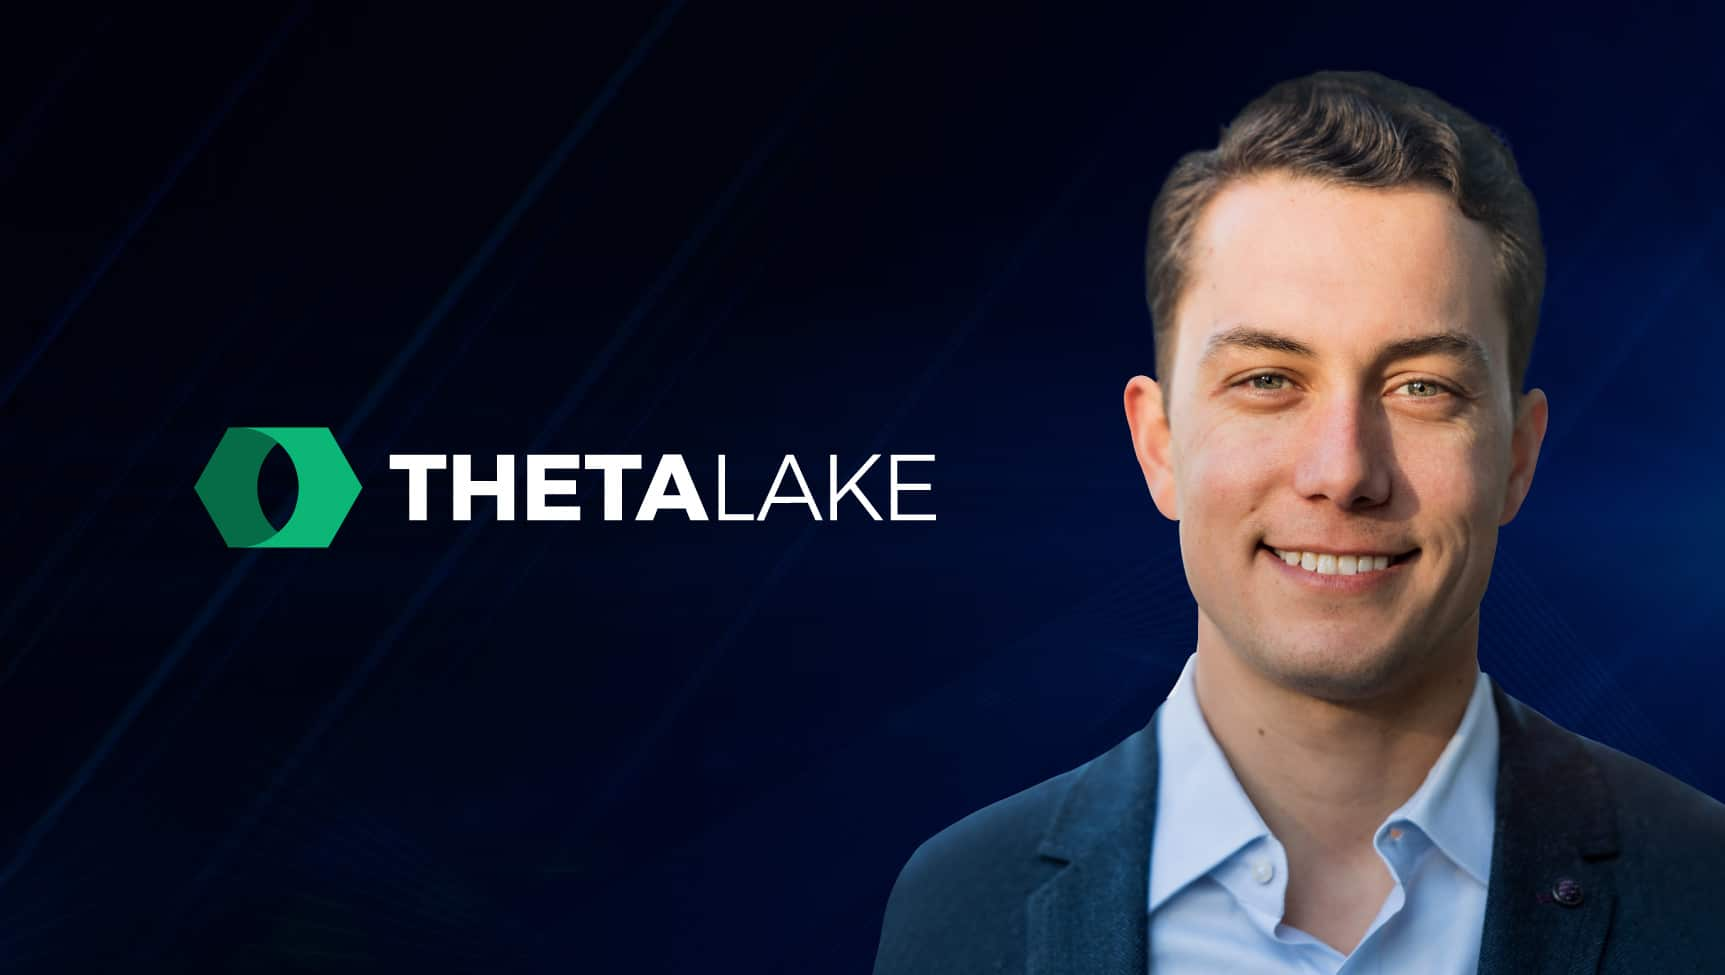 Theta Lake's Anthony Cresci discusses AI and more with SalesTech Star